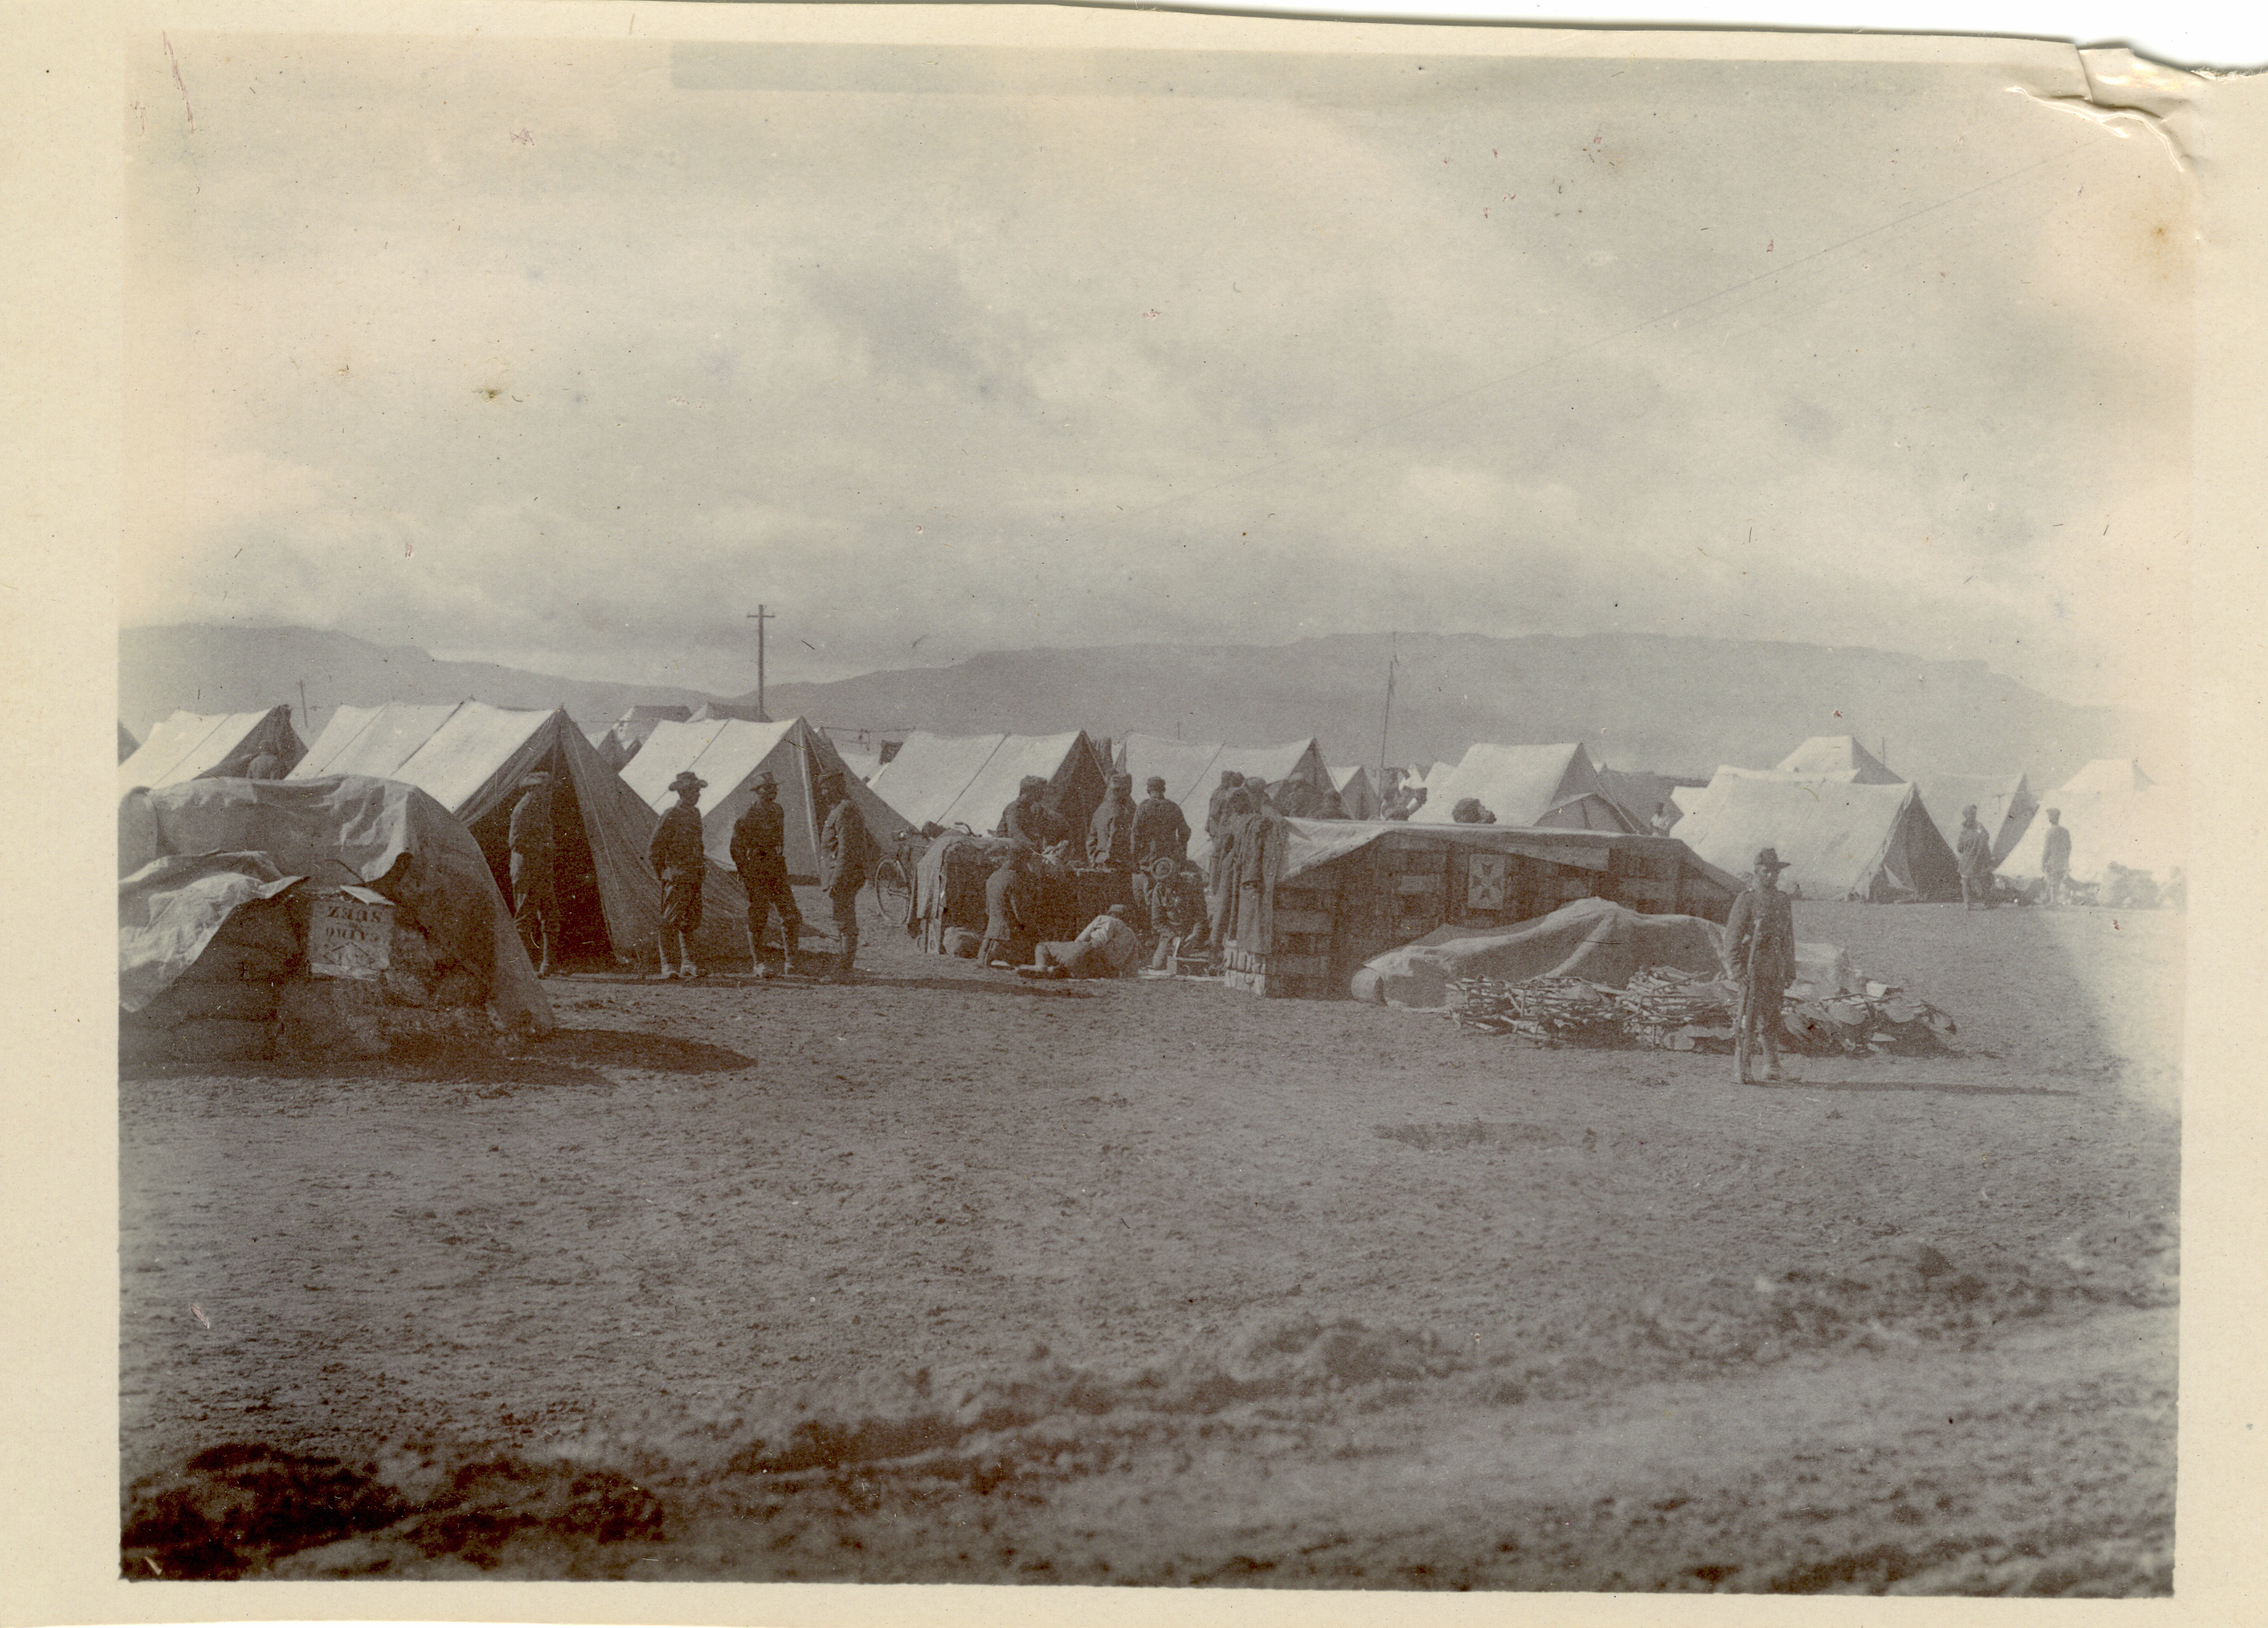 Un-captioned, but probably a camp at Ain Musa with the Gulf of Suez in the background - the Garhwal Rifles in Egypt in 1916